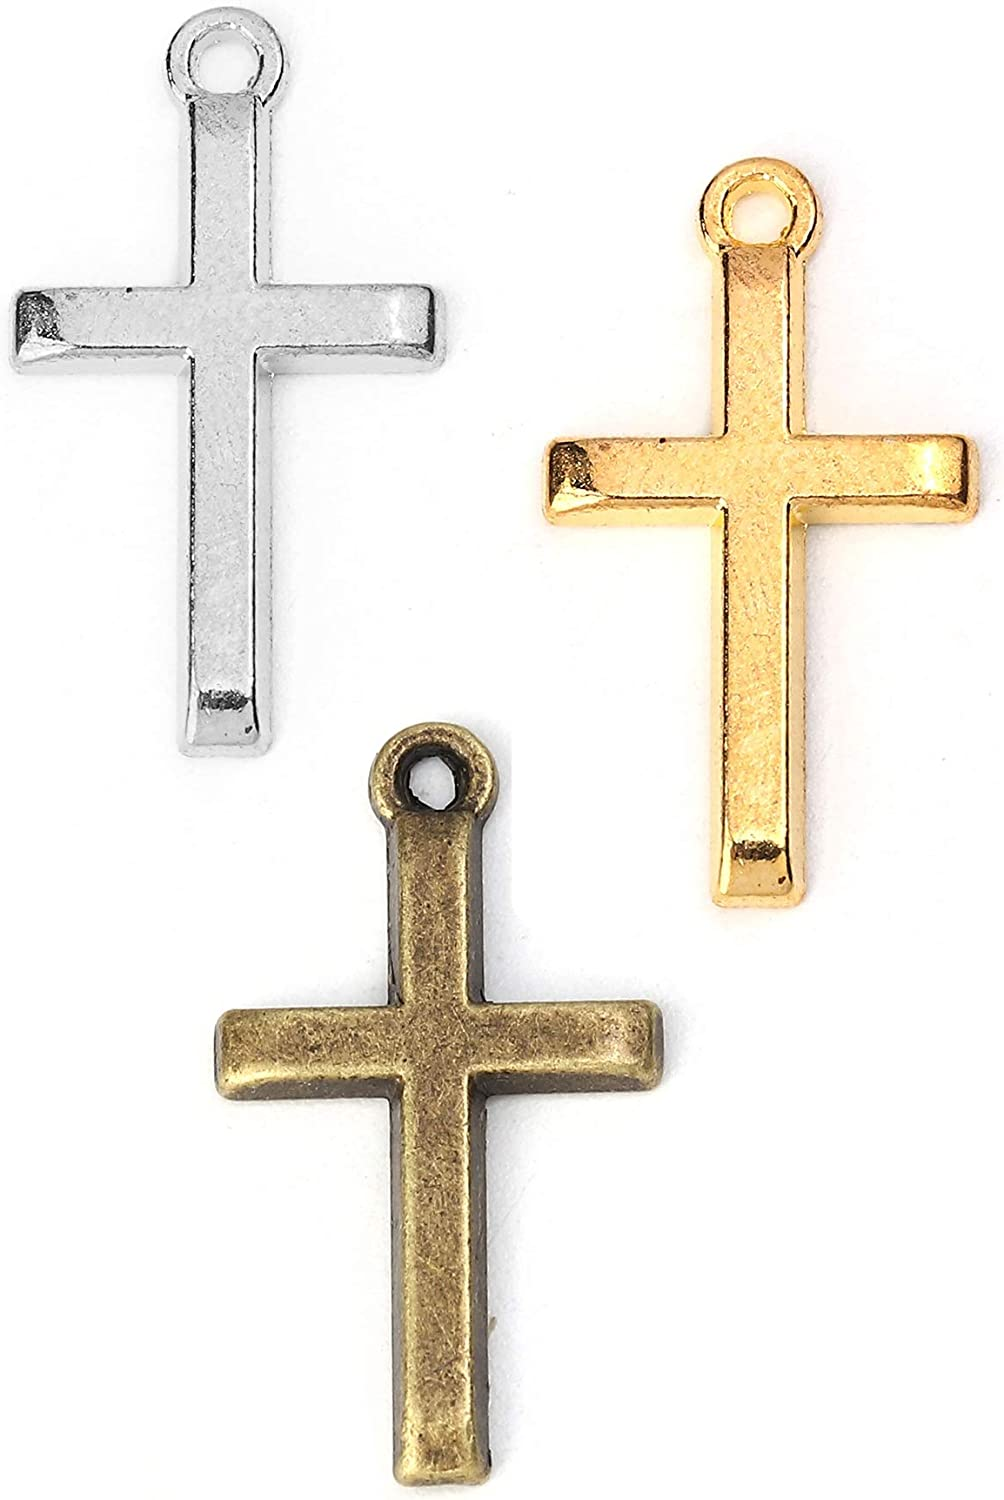 JGFinds Cross Crucifix Charm Pendants Max 90% OFF - 50 Pack of 70% OFF Outlet each 150 1